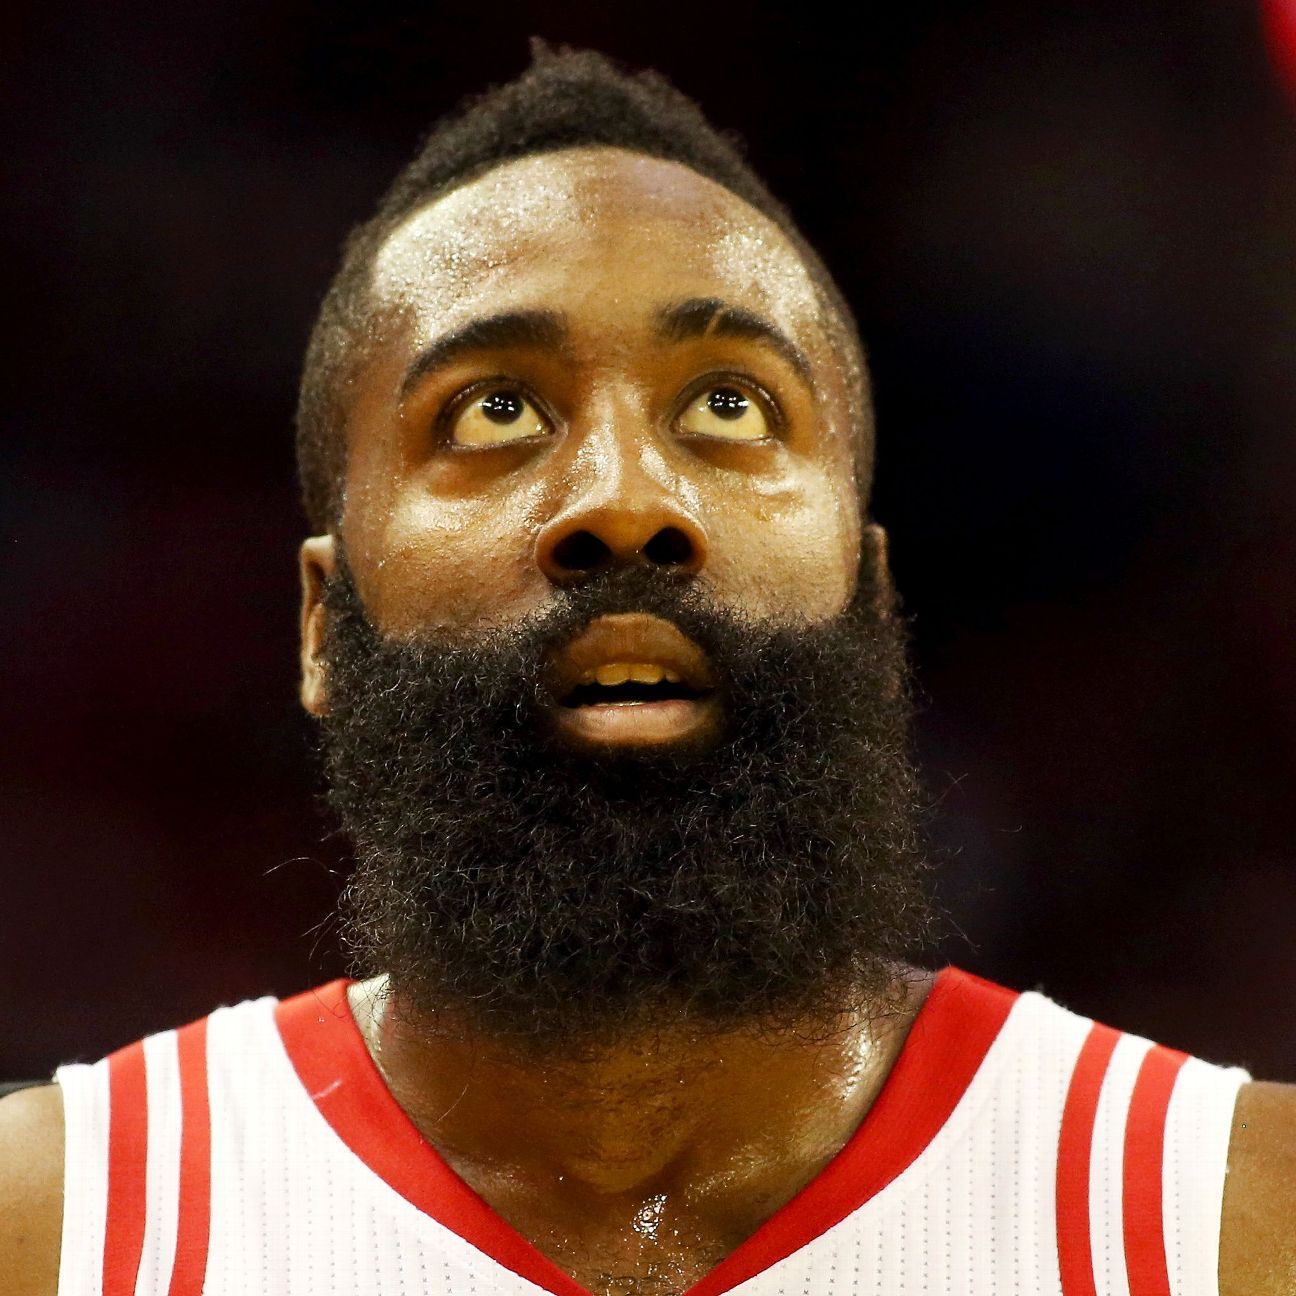 Houston Rockets Where To Watch The Upcoming Match Espn: James Harden Of Houston Rockets Upset At Fan That Shined